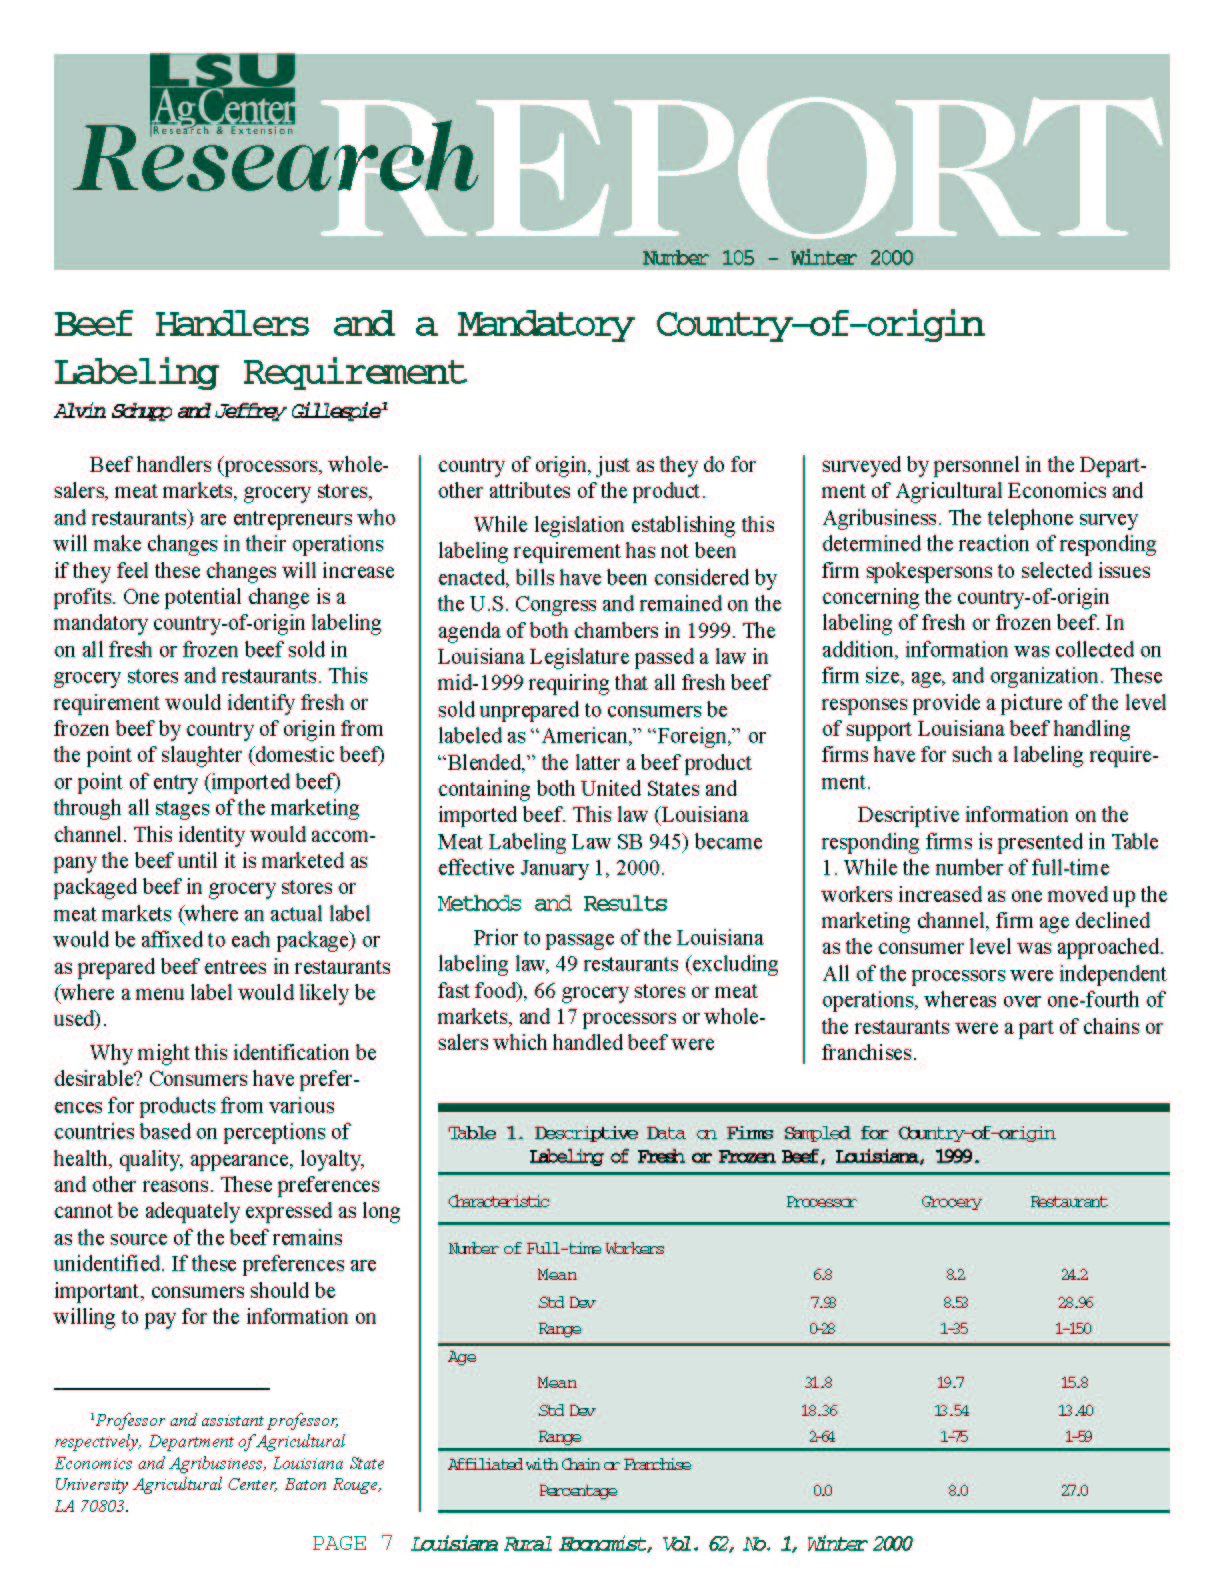 Beef Handlers and a Mandatory Country-of-origin Labeling Requirement (Winter 2000)